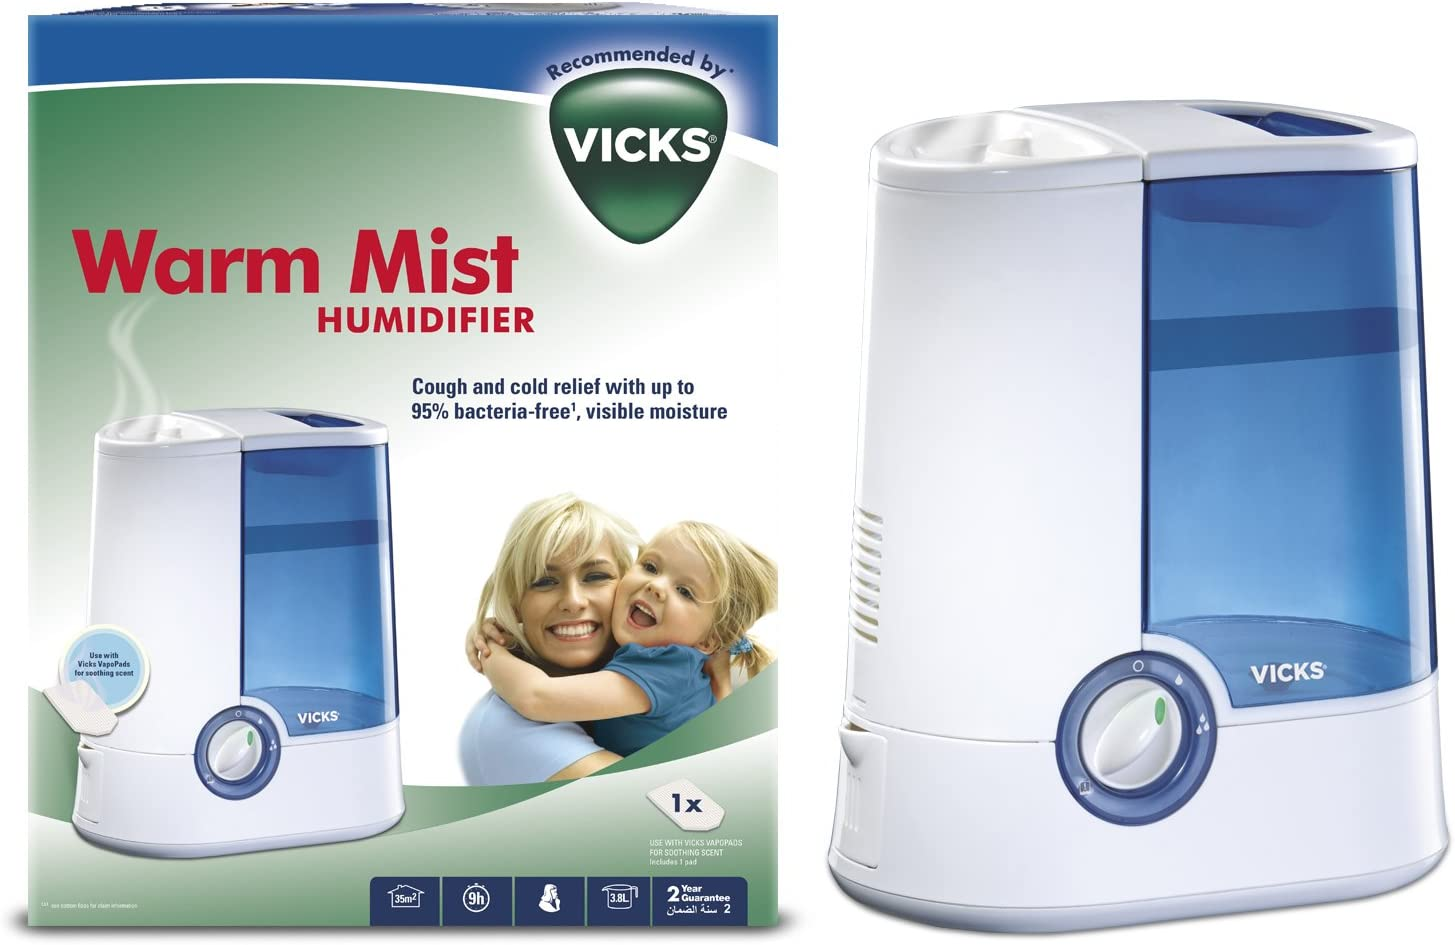 Vicks VH750 Warm Mist Humidifier